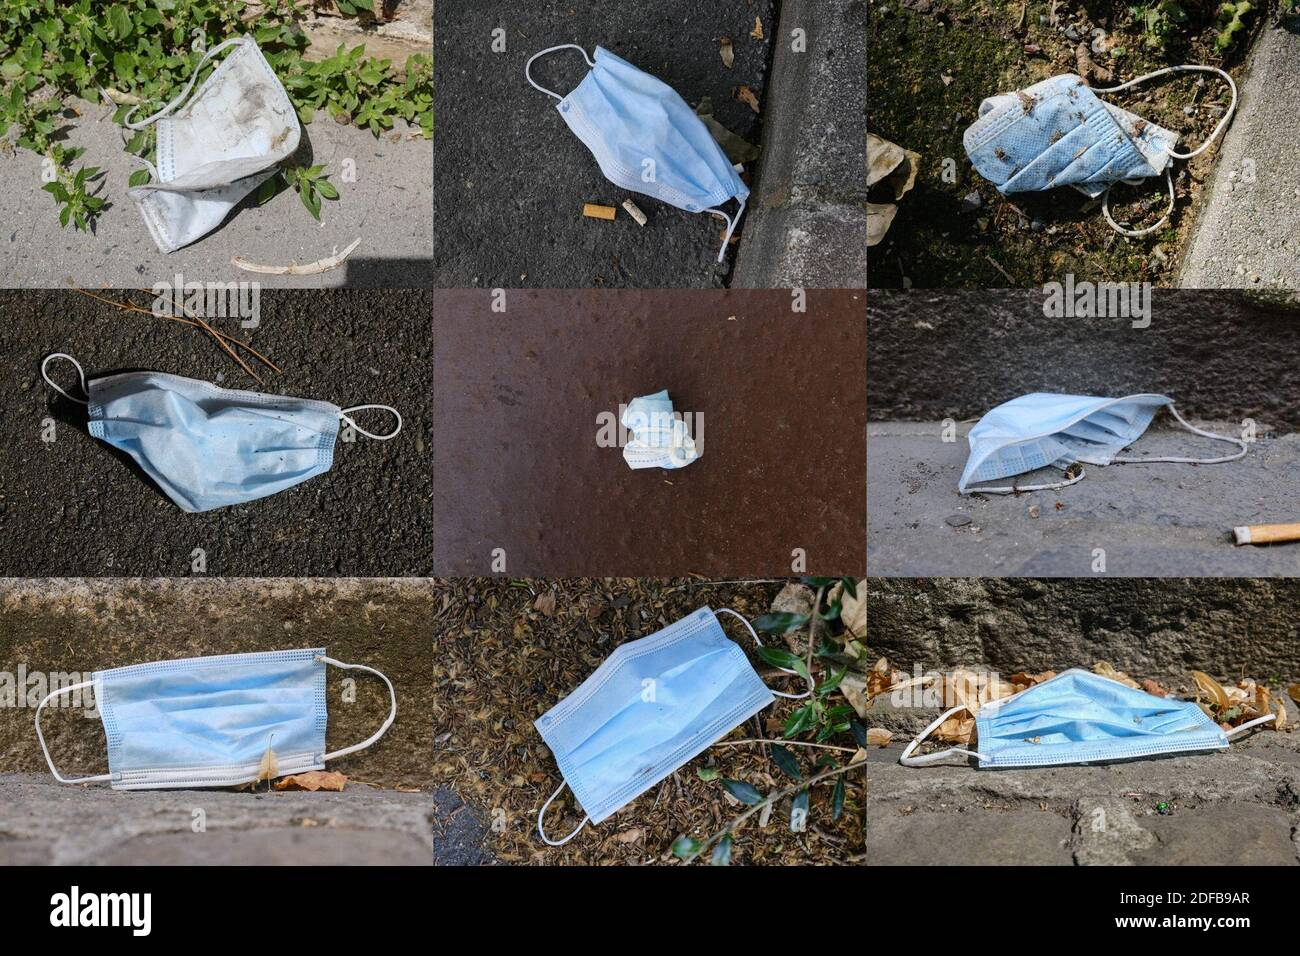 Combo photo of protective face masks discarded on the ground in Toulouse, France, on June 27, 2020. As the use of masks and gloves sky-rocketed to protect the humanity from the coronavirus pandemic, their impact on environment also rose, with the worrying consumption of plastic and its disposal. Many fear the progress of eliminating single-use plastic is now being undone, as these protection tools are already being seen polluting the environment. Photo by Patrick Batard/ABACAPRESS.COM Stock Photo